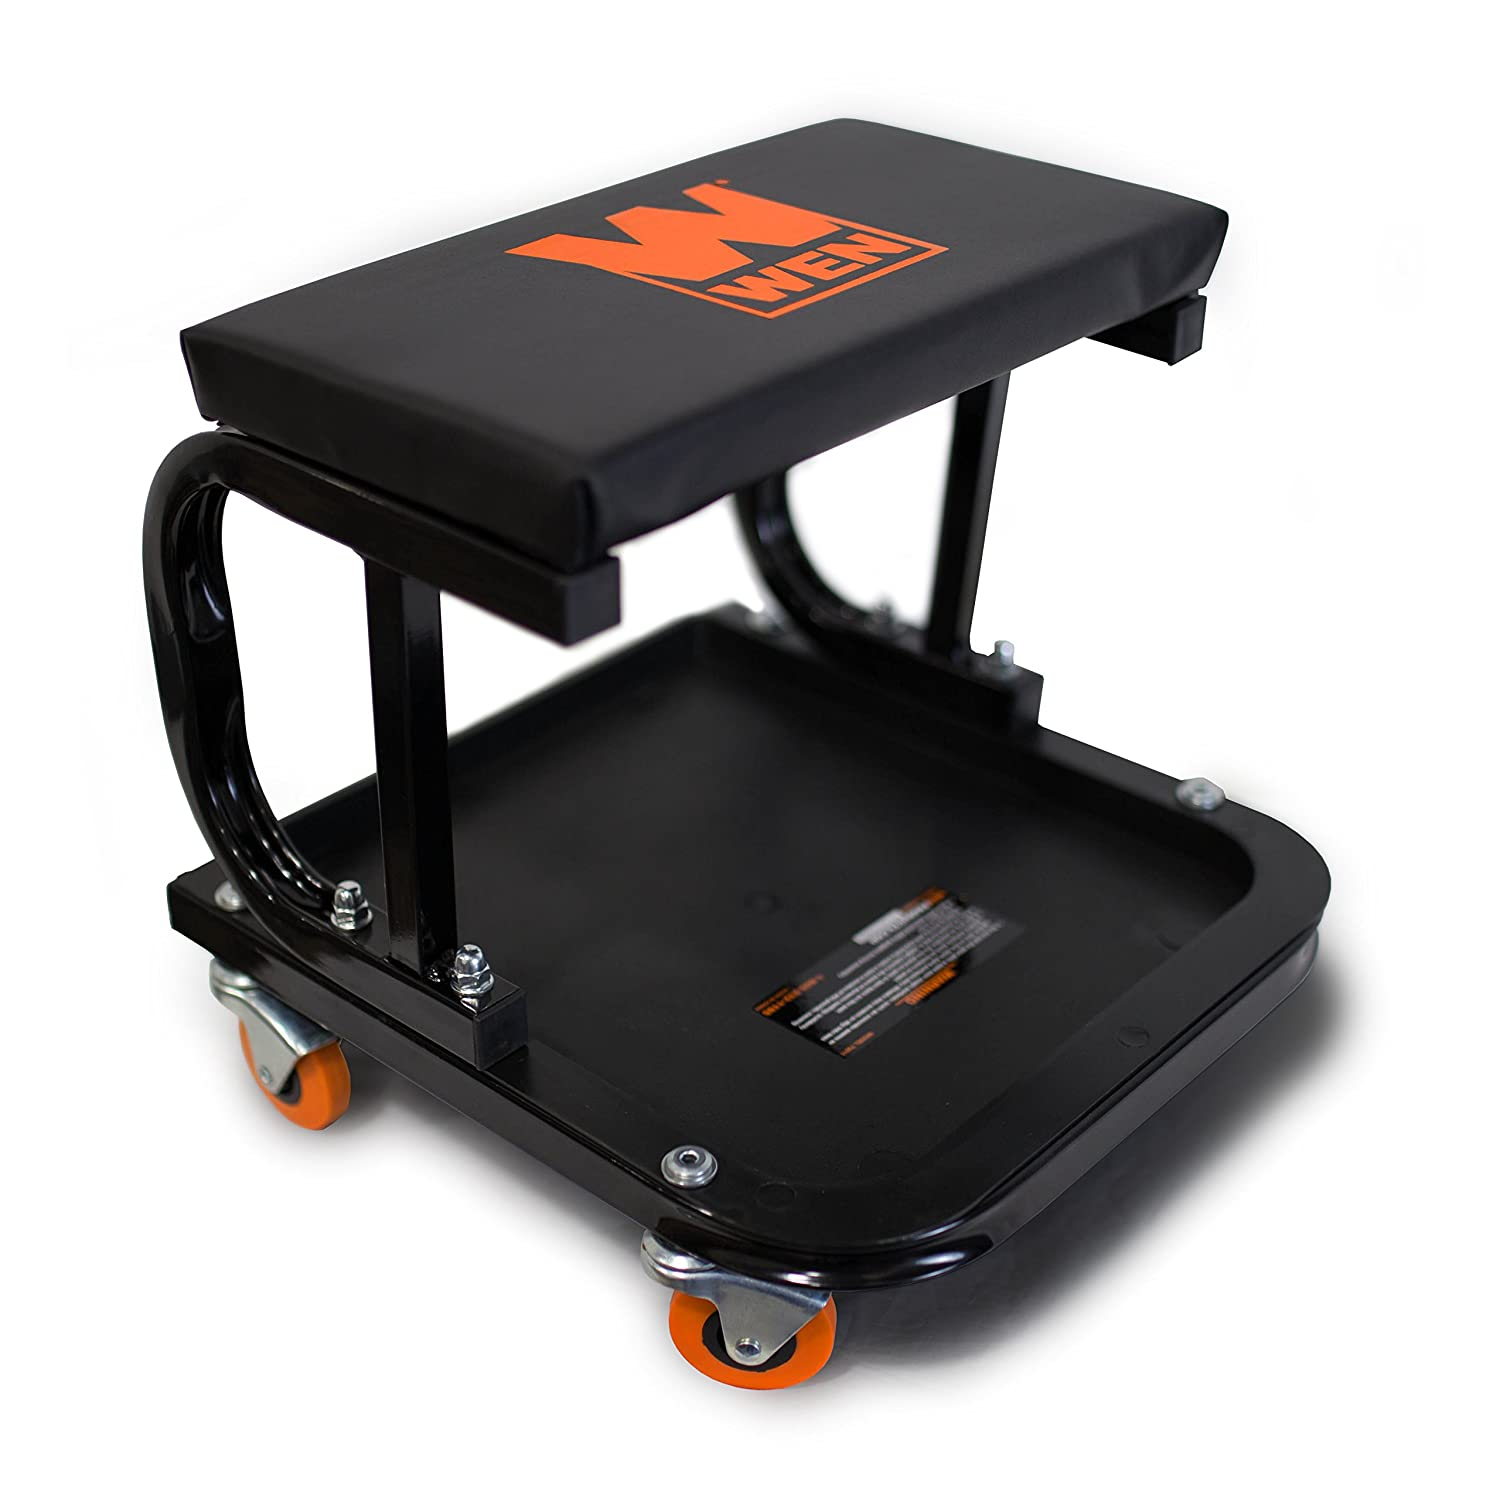 Amazon WEN Rolling Mechanic Seat with board Storage